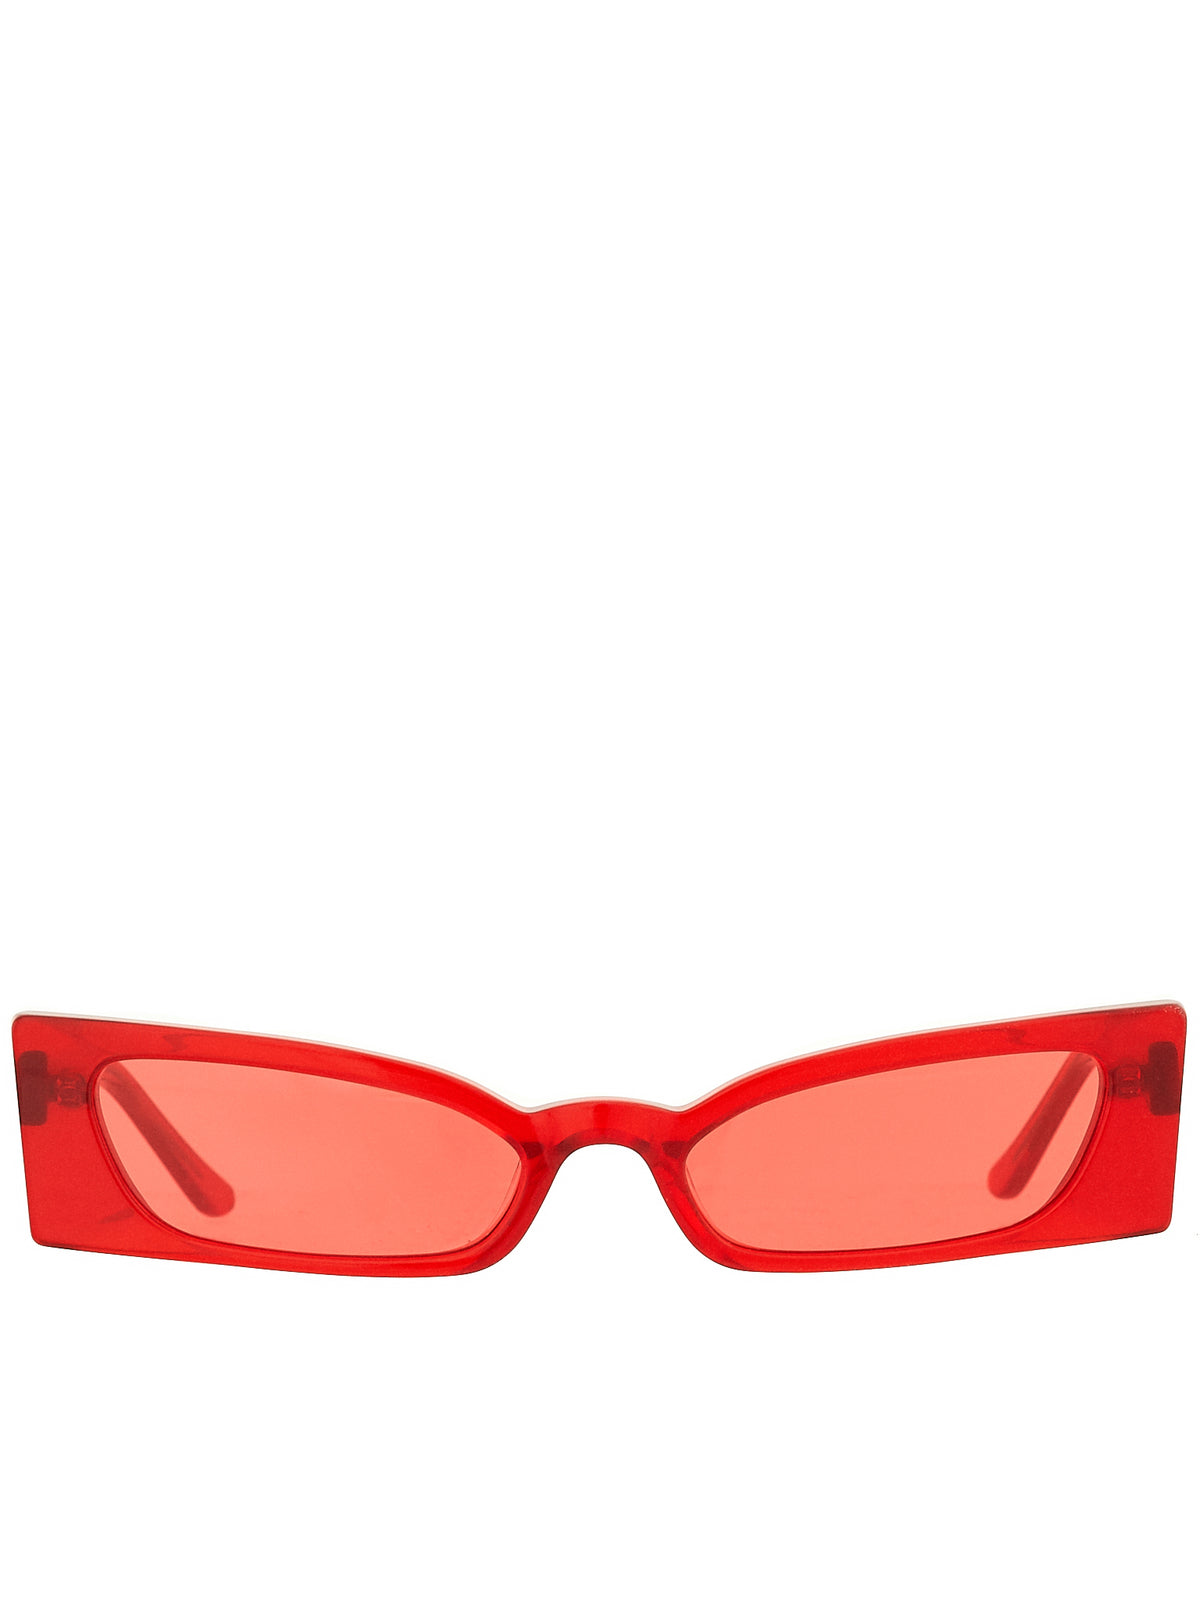 Roberi & Fraud Red Sunglasses - Hlorenzo Front